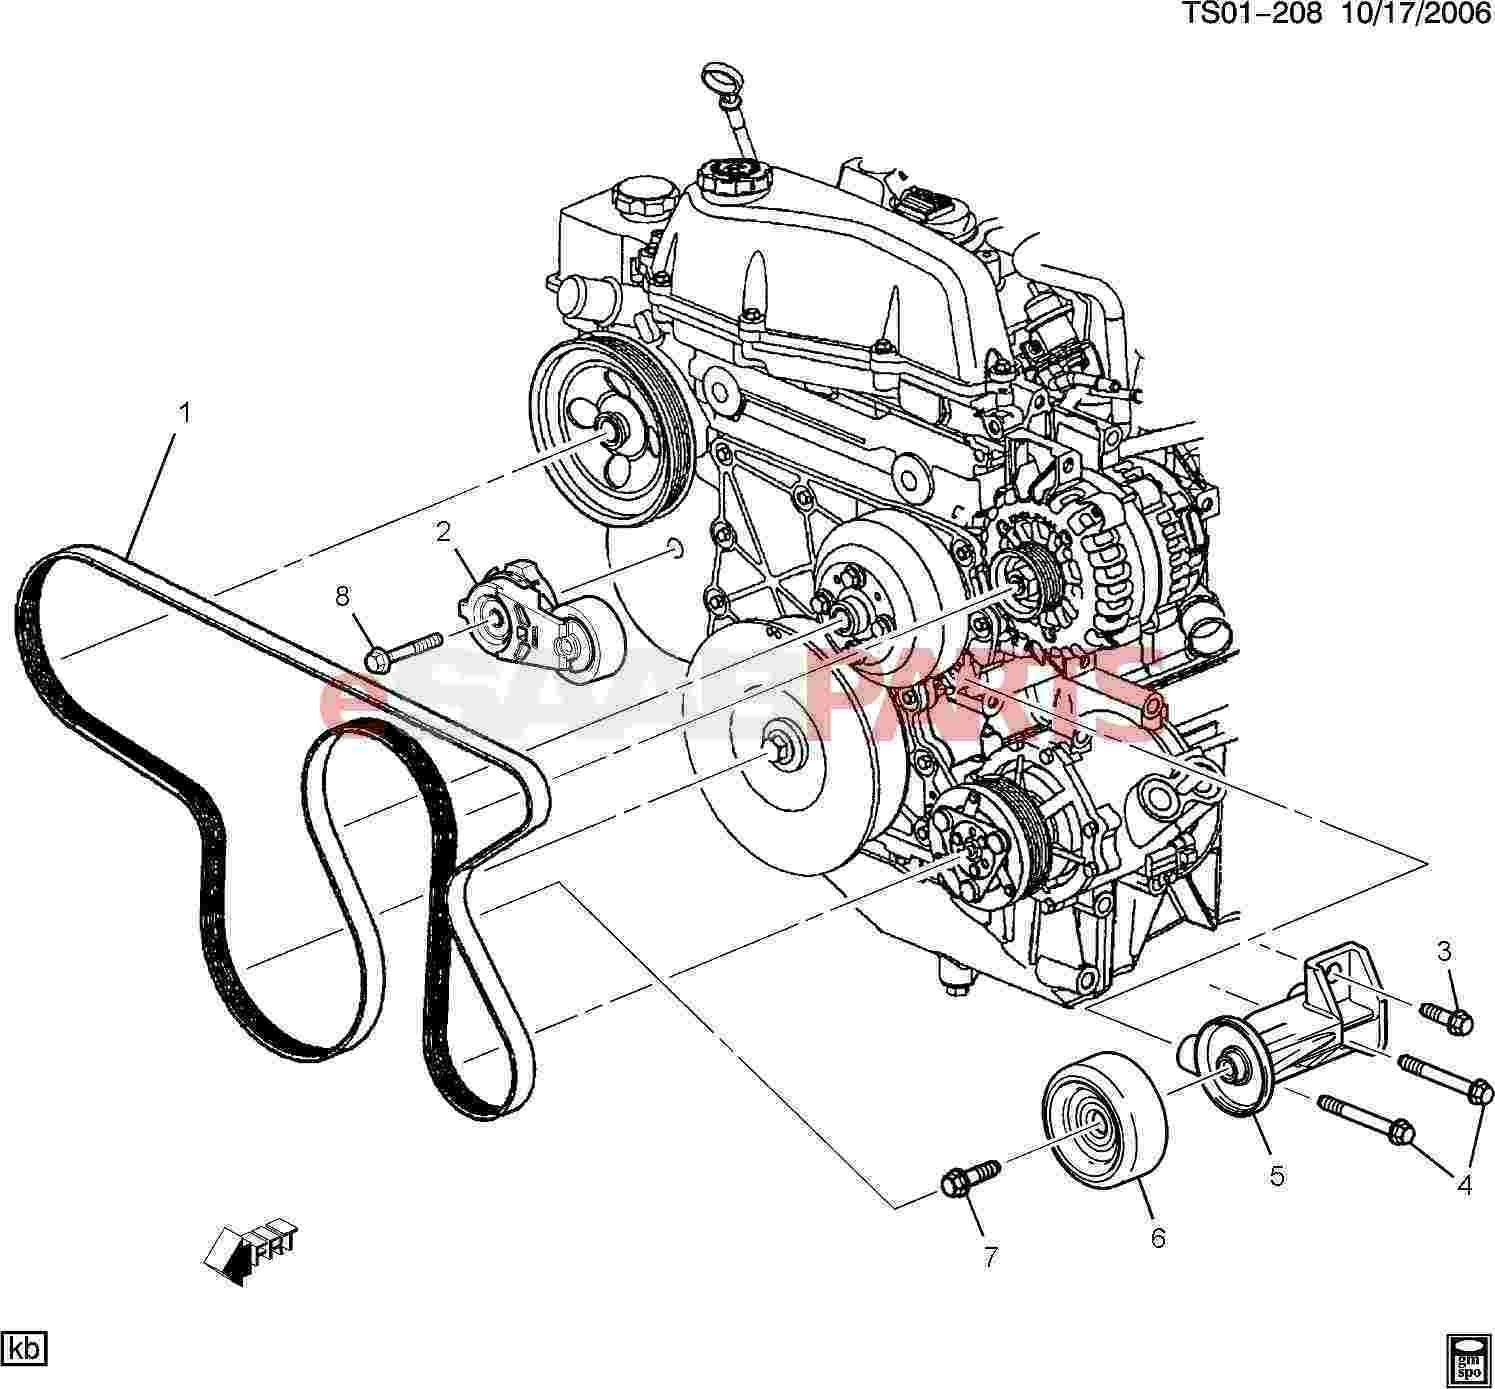 2002 chevy trailblazer 4 2 engine diagram wiring circuit u2022 rh wiringonline today 2002 chevy trailblazer engine diagram 4.2 Vortec Engine Diagram